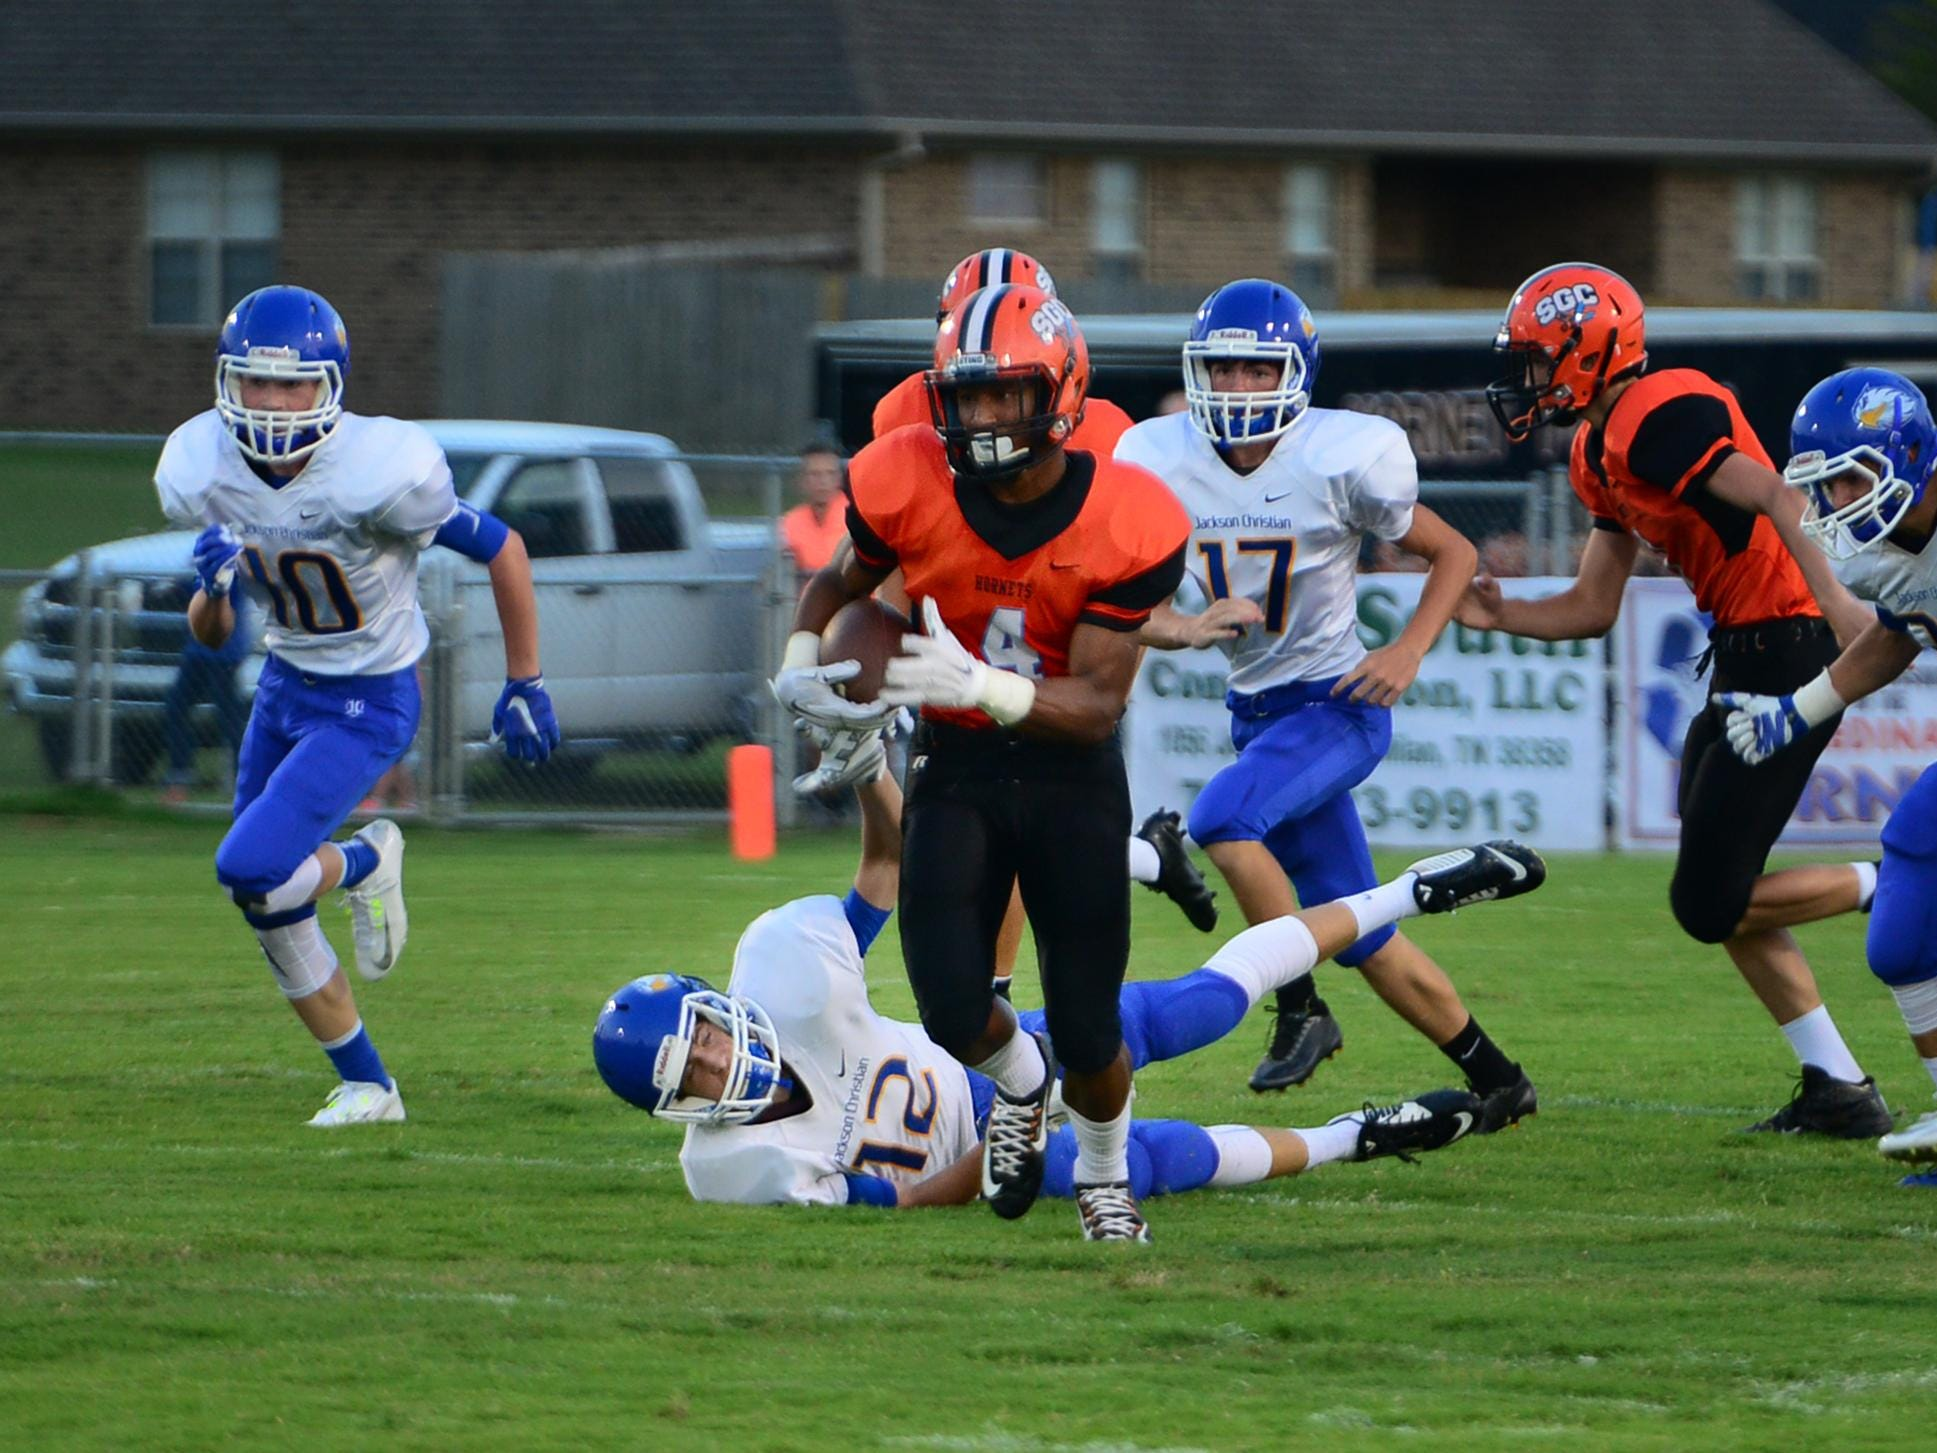 South Gibson County's Tyler Dysart returns the opening kickoff for a touchdown during their game Friday against Jackson Christian.